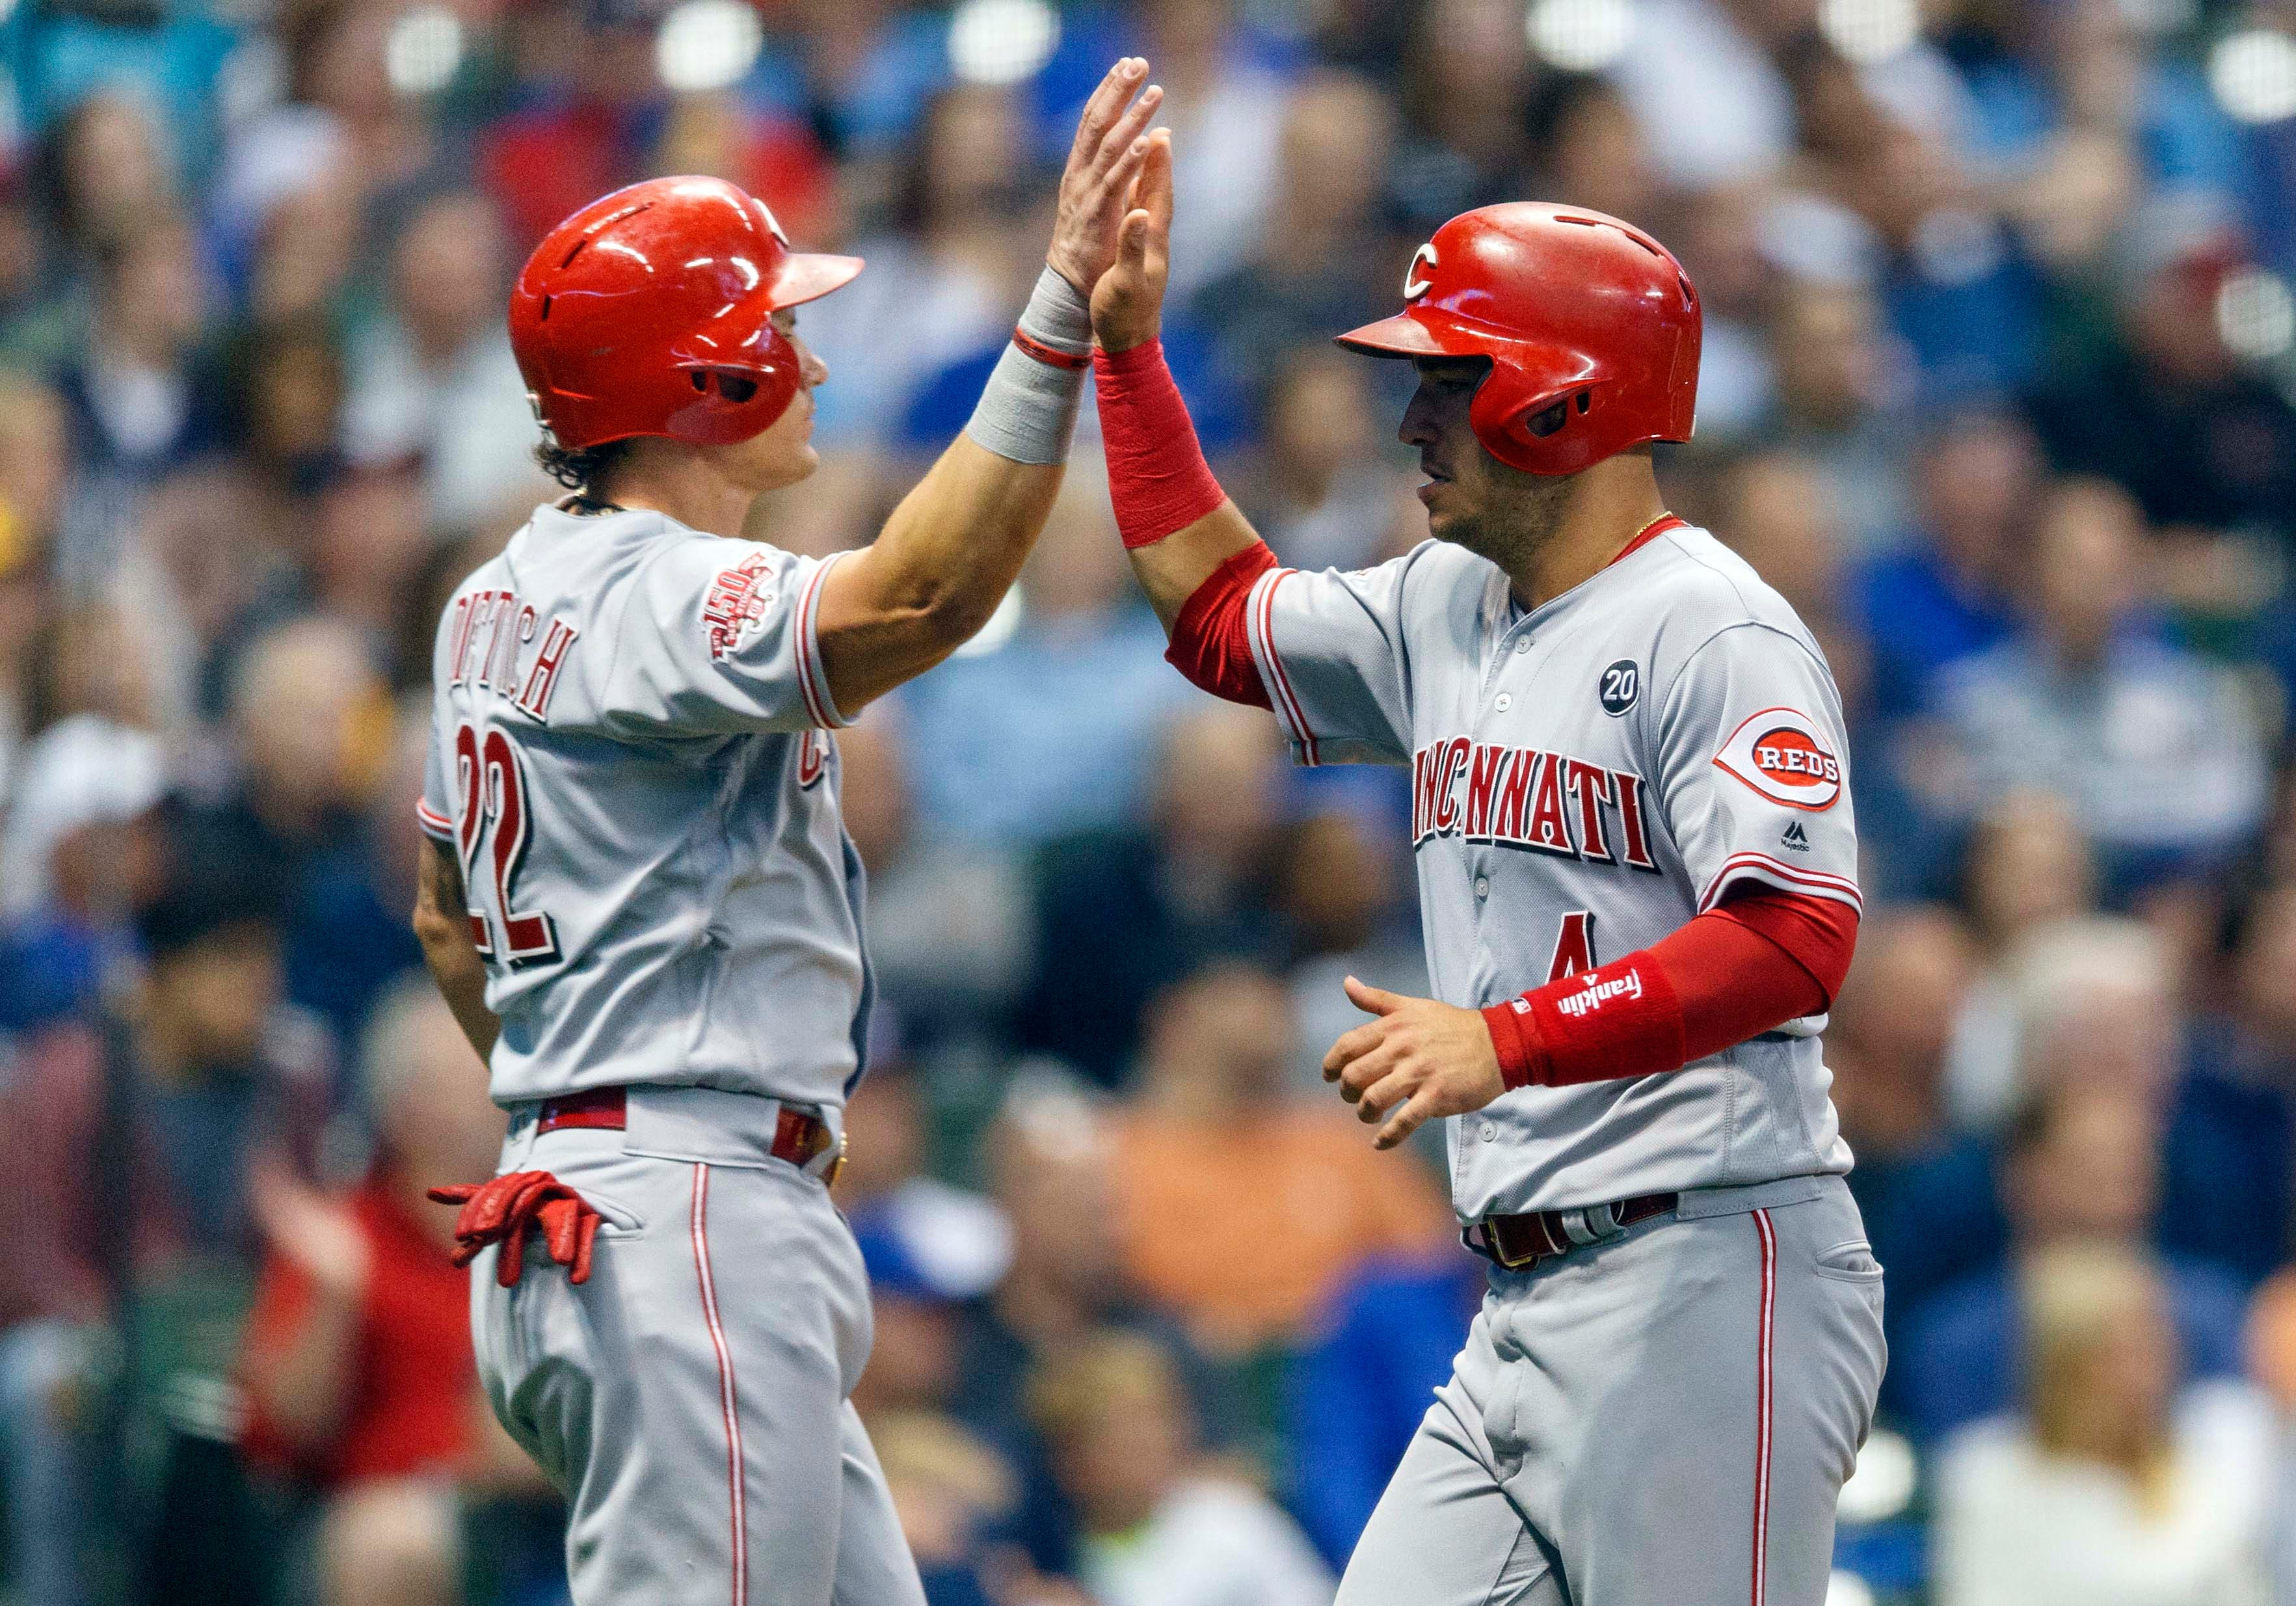 f2107cee5 Derek Dietrich tied an MLB record when he was hit by 3 pitches in the Reds'  11-7 win over the Brewers.